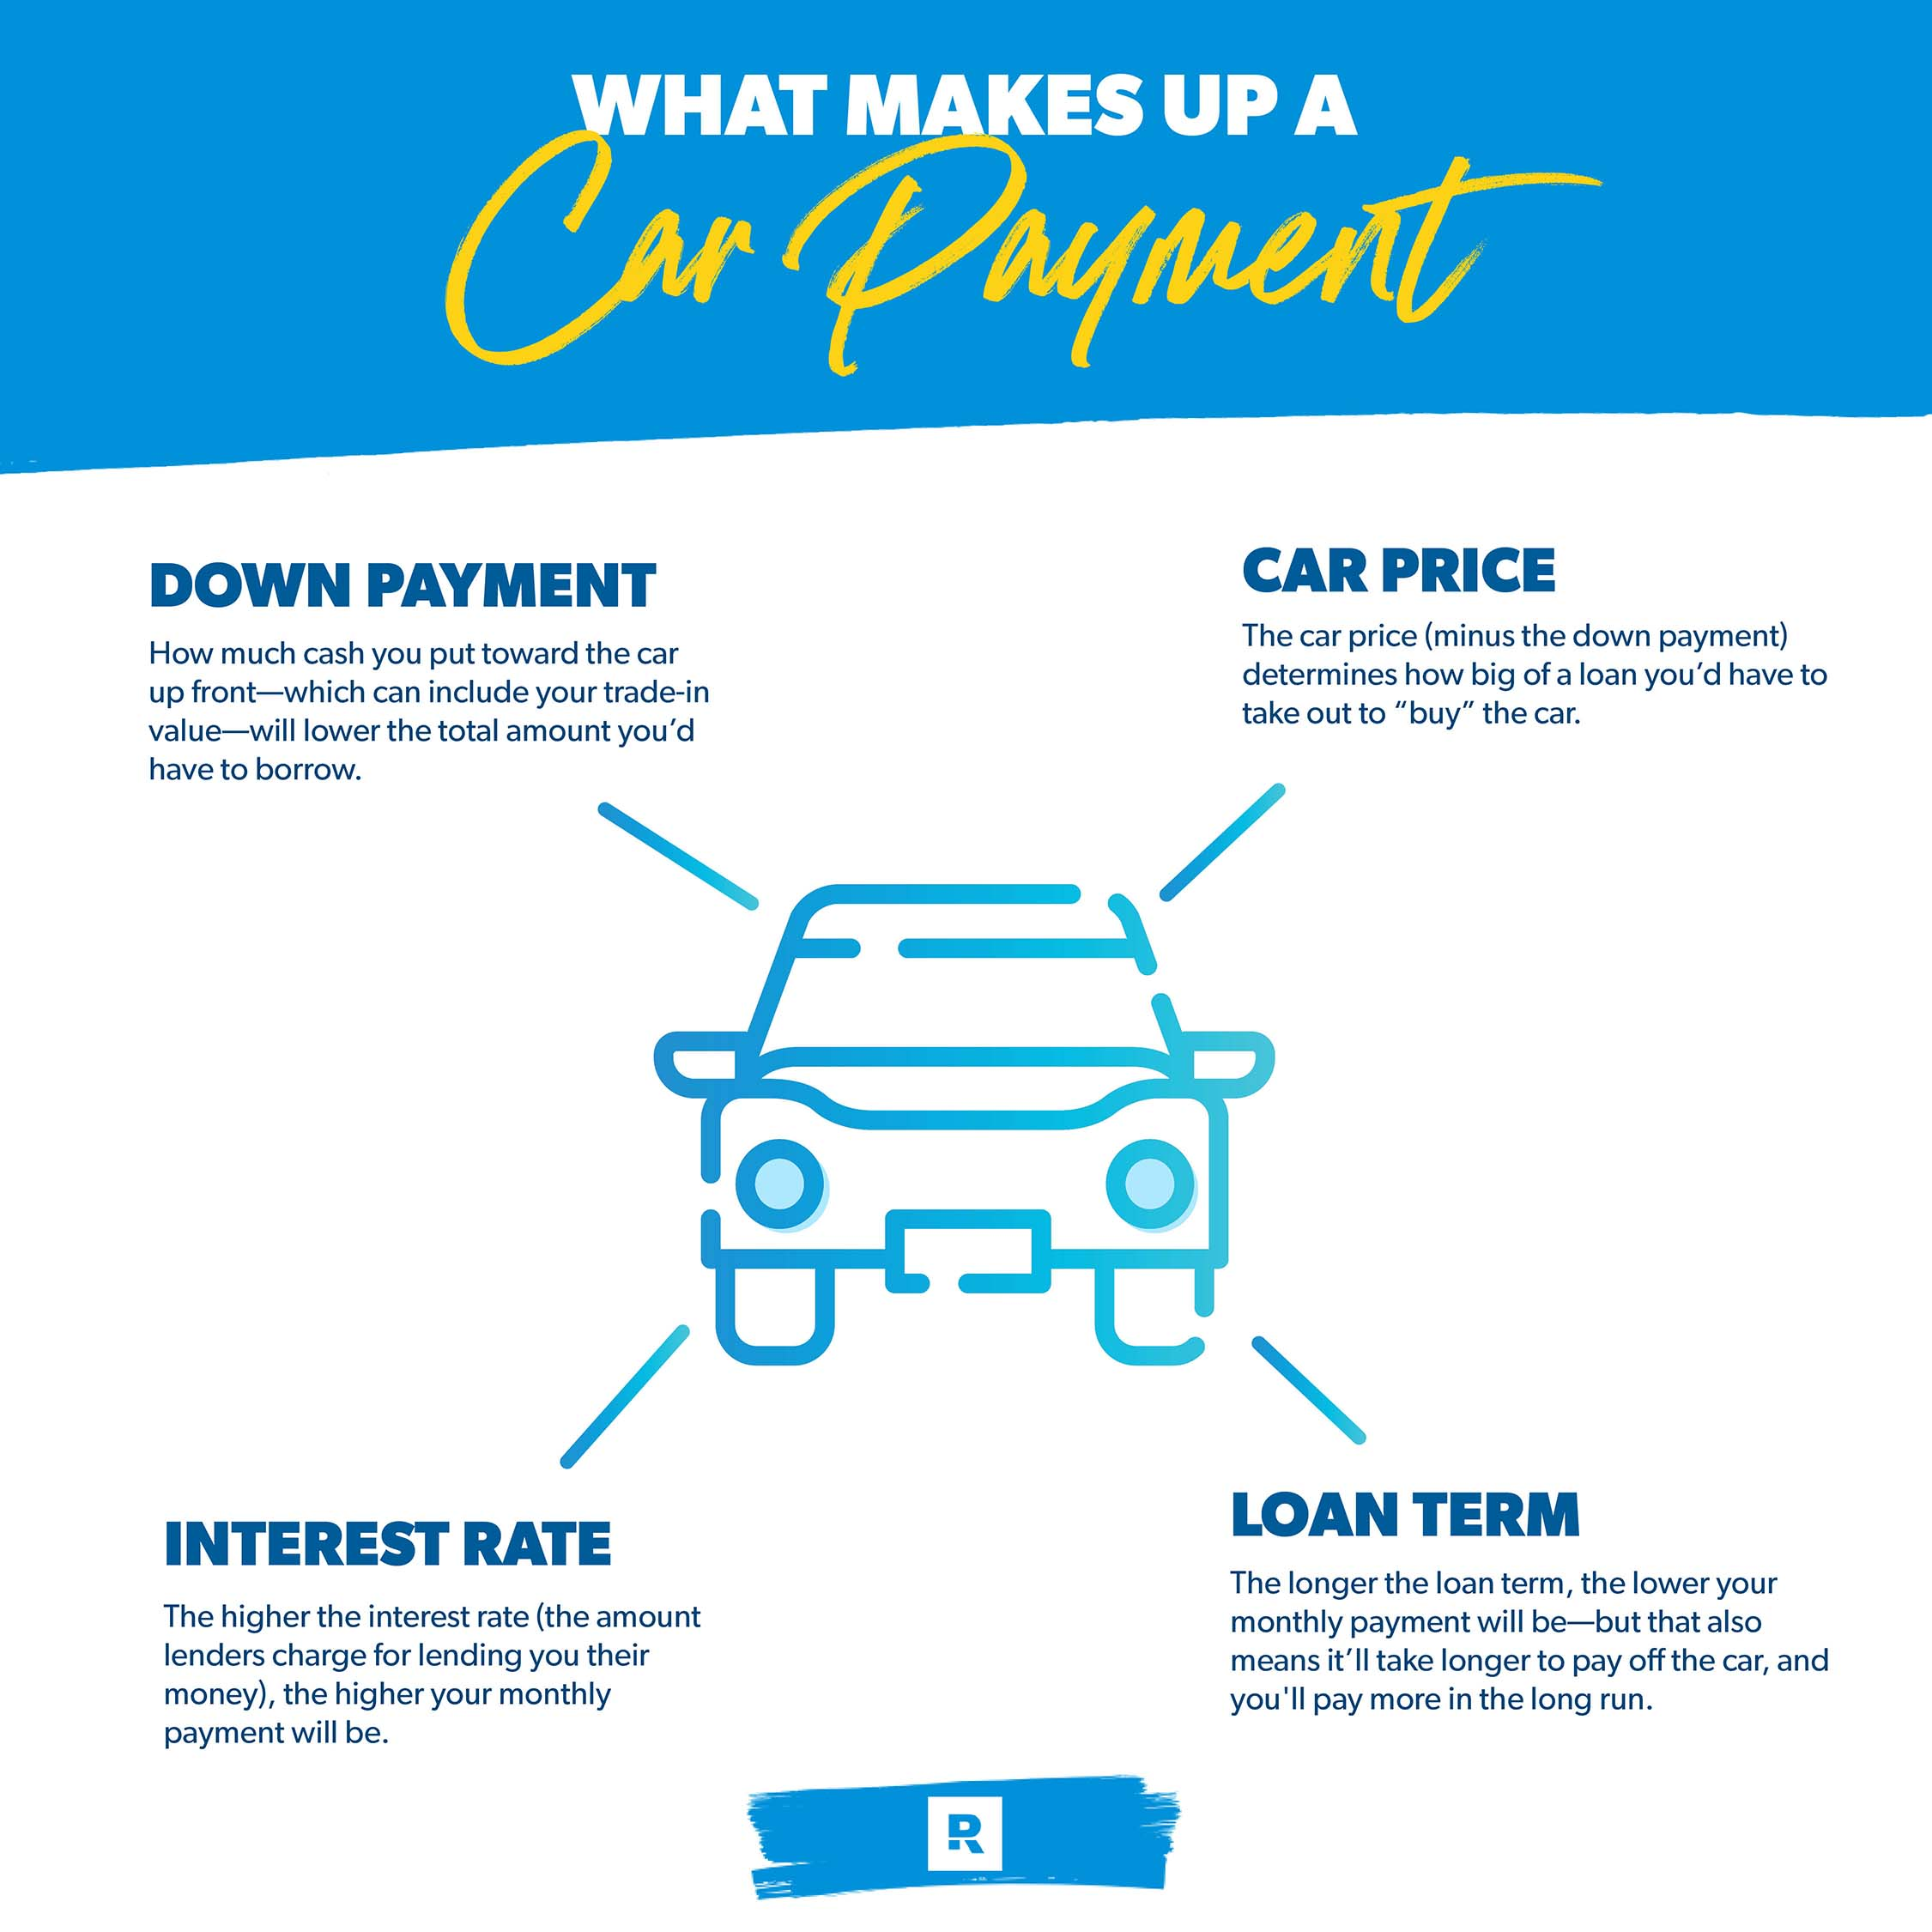 What makes up a car payment